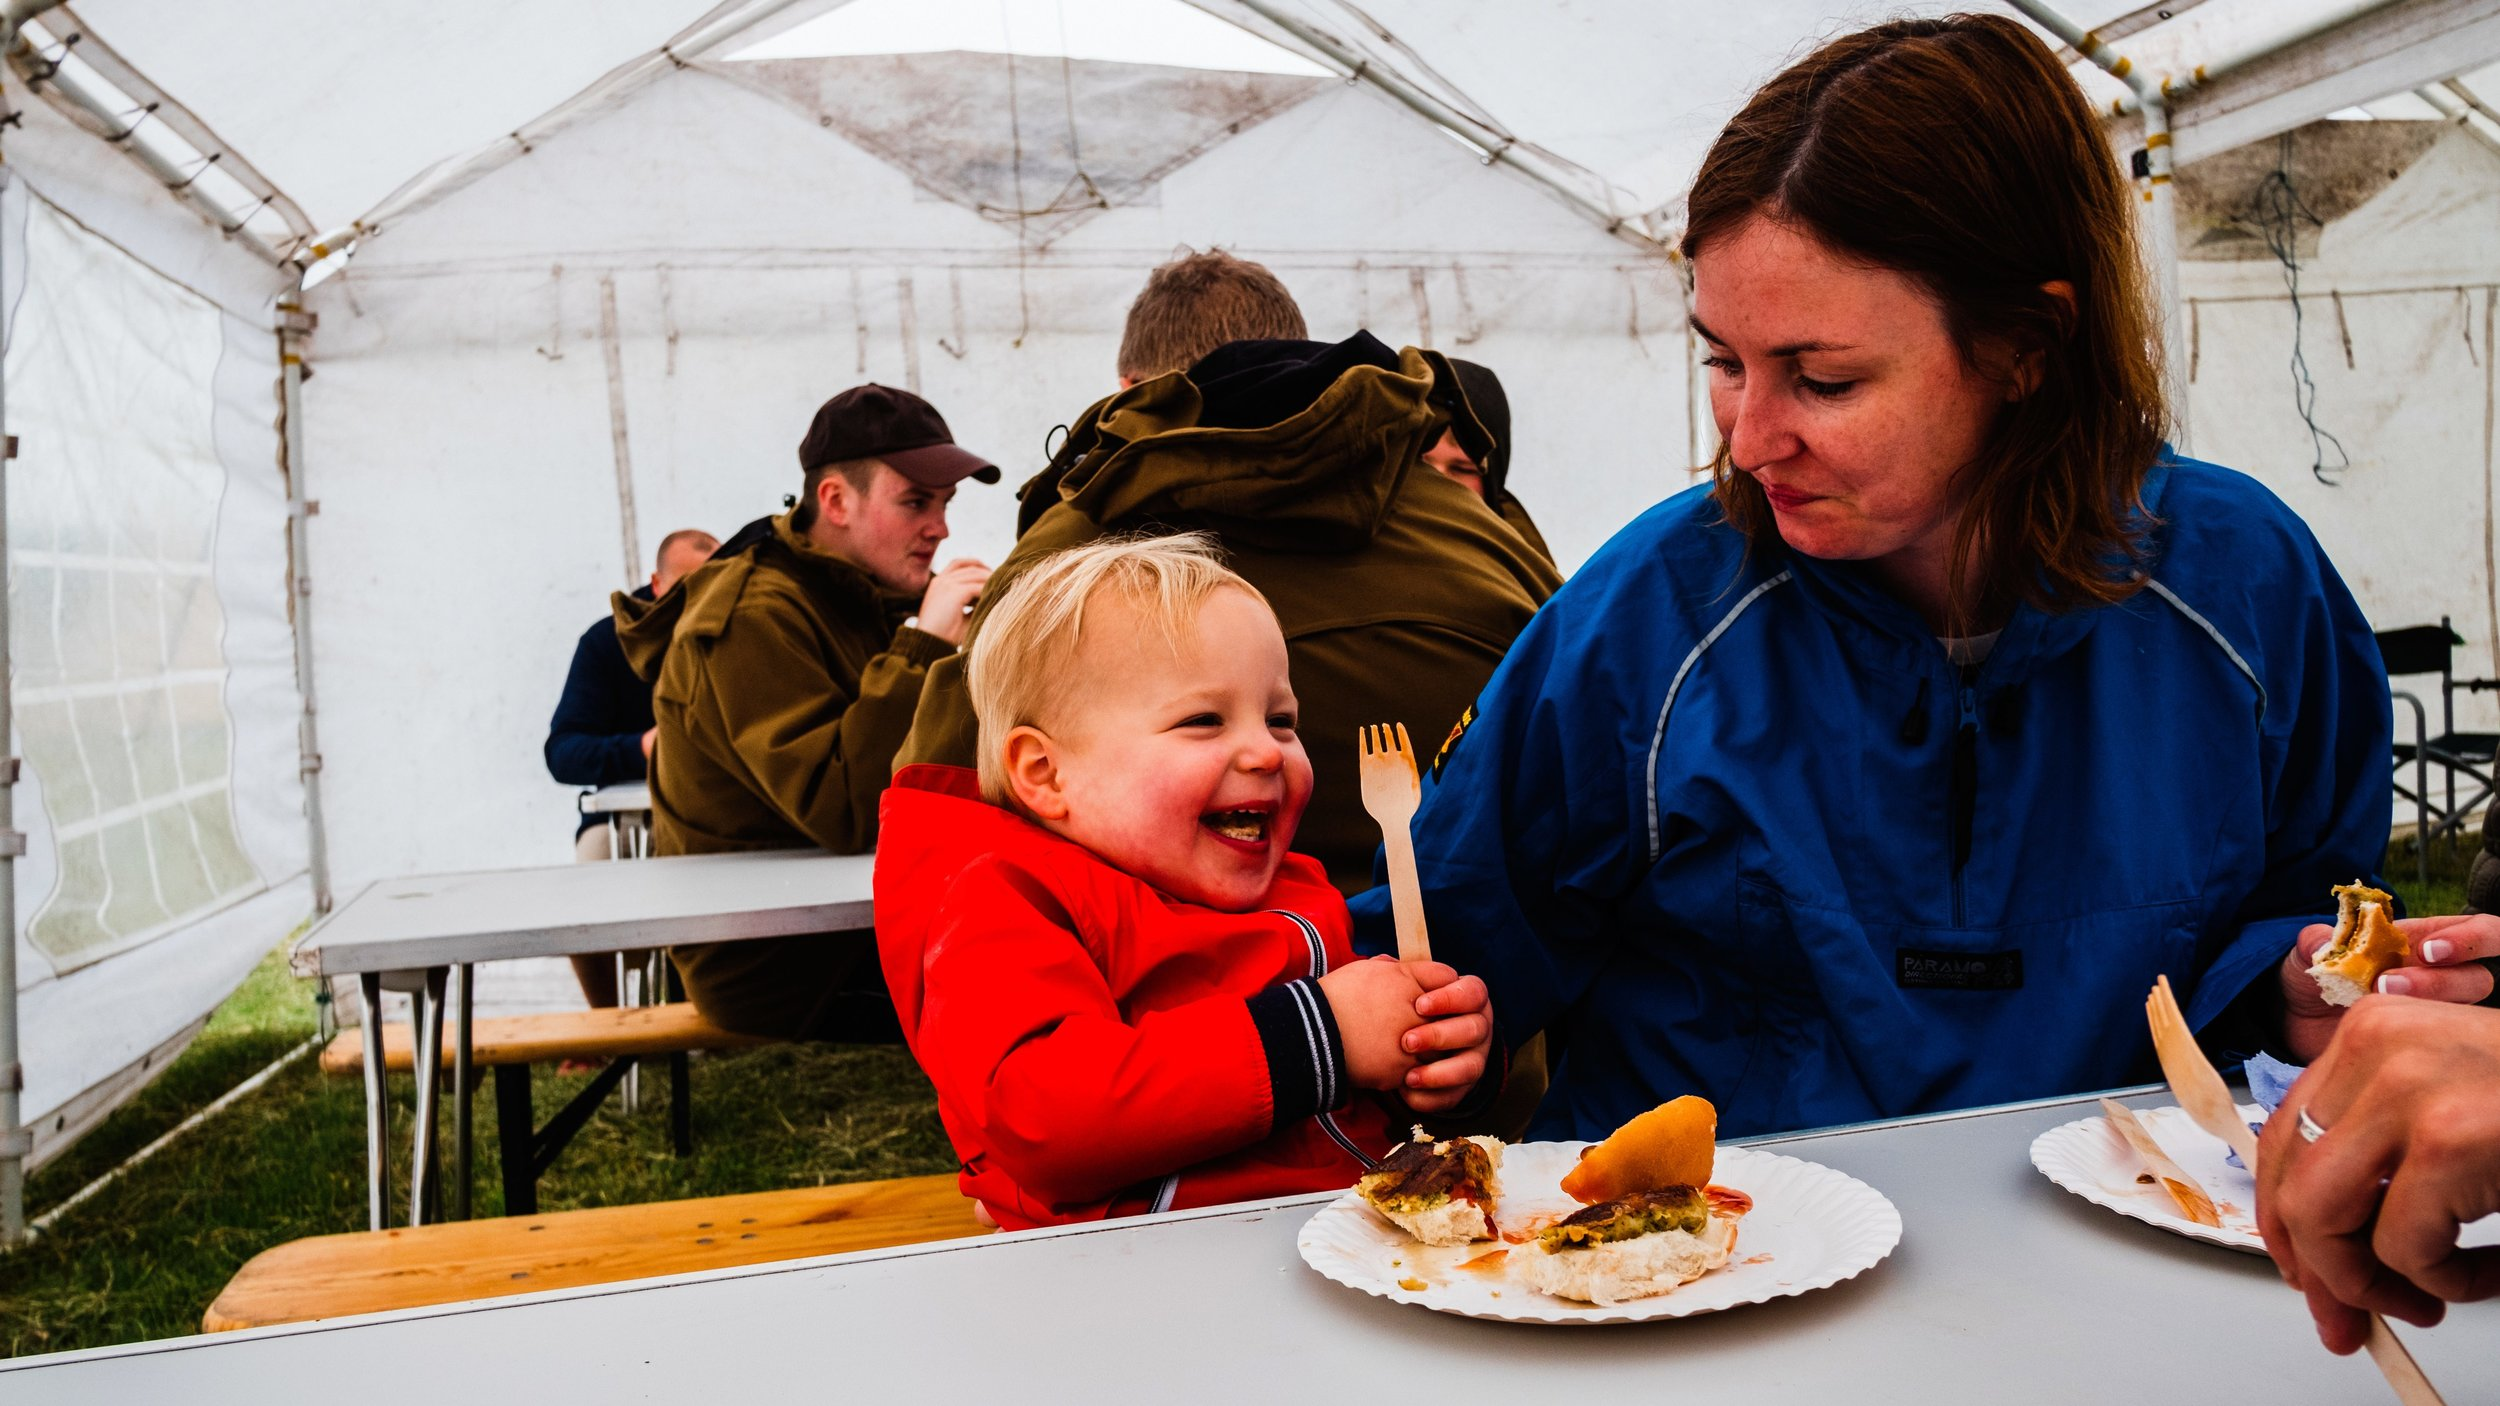 breakfast in a tent during a tipi wedding in peak district